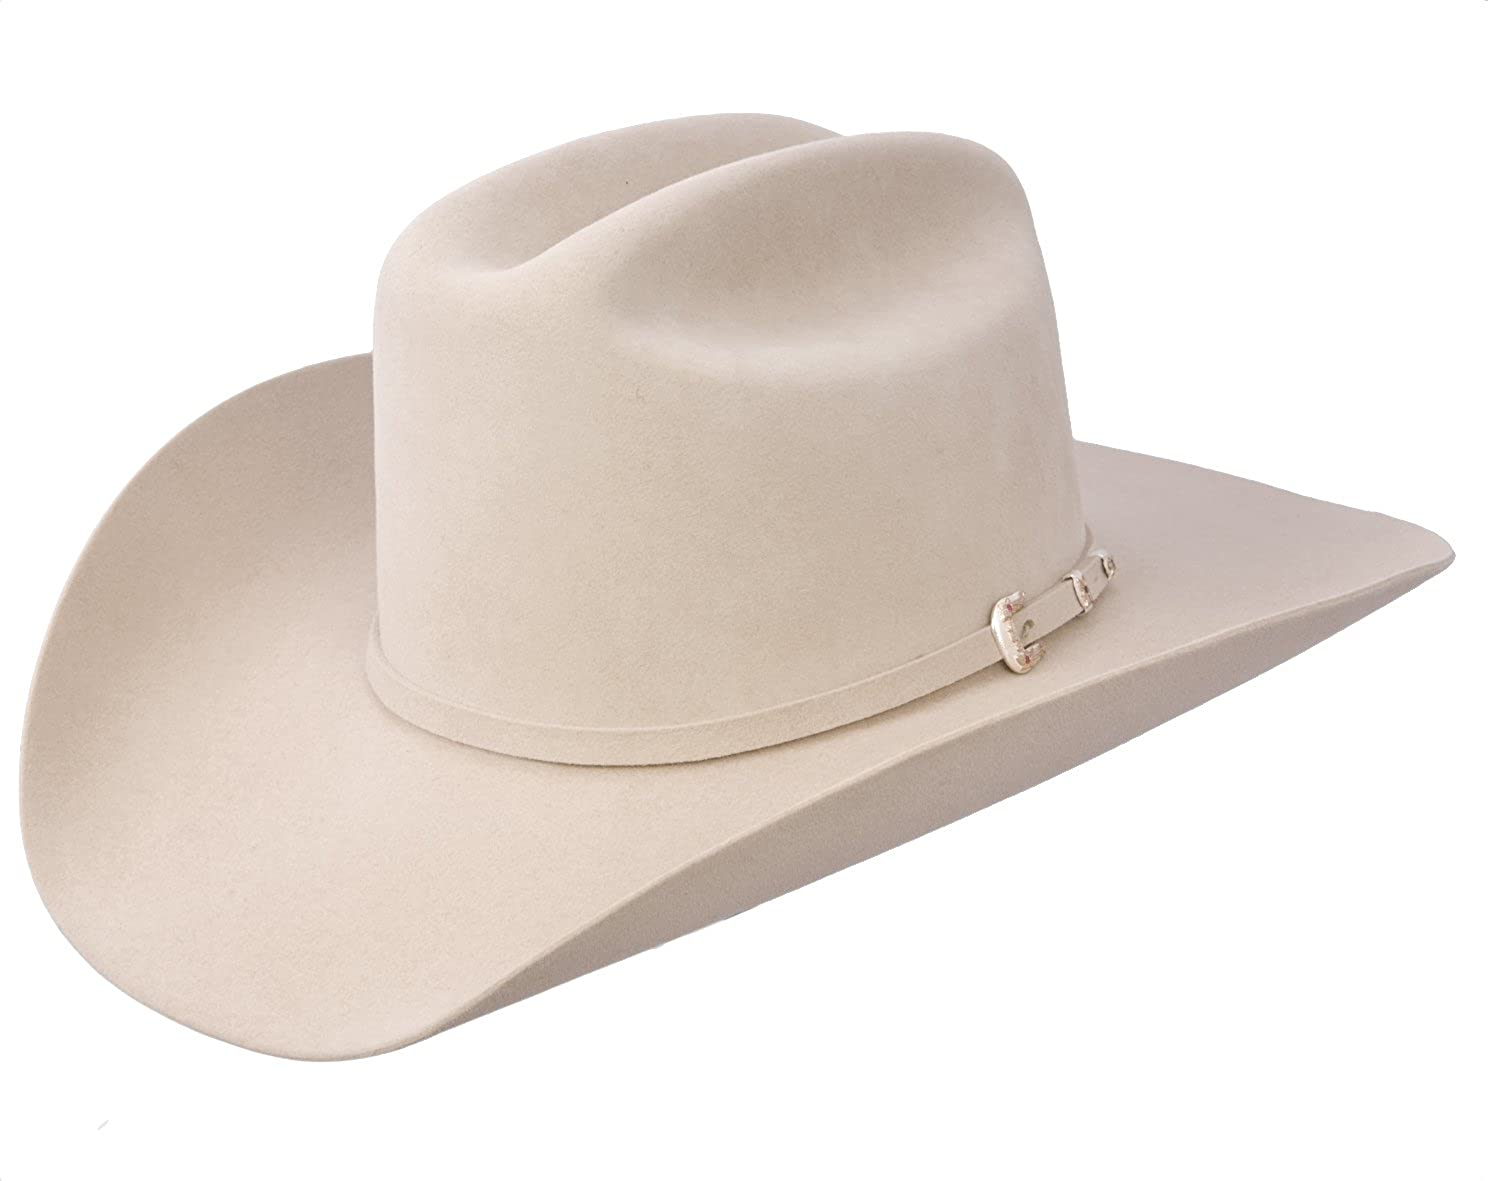 Stetson Men's El Patron 70% OFF Outlet Hat Western Tulsa Mall Silverbelly